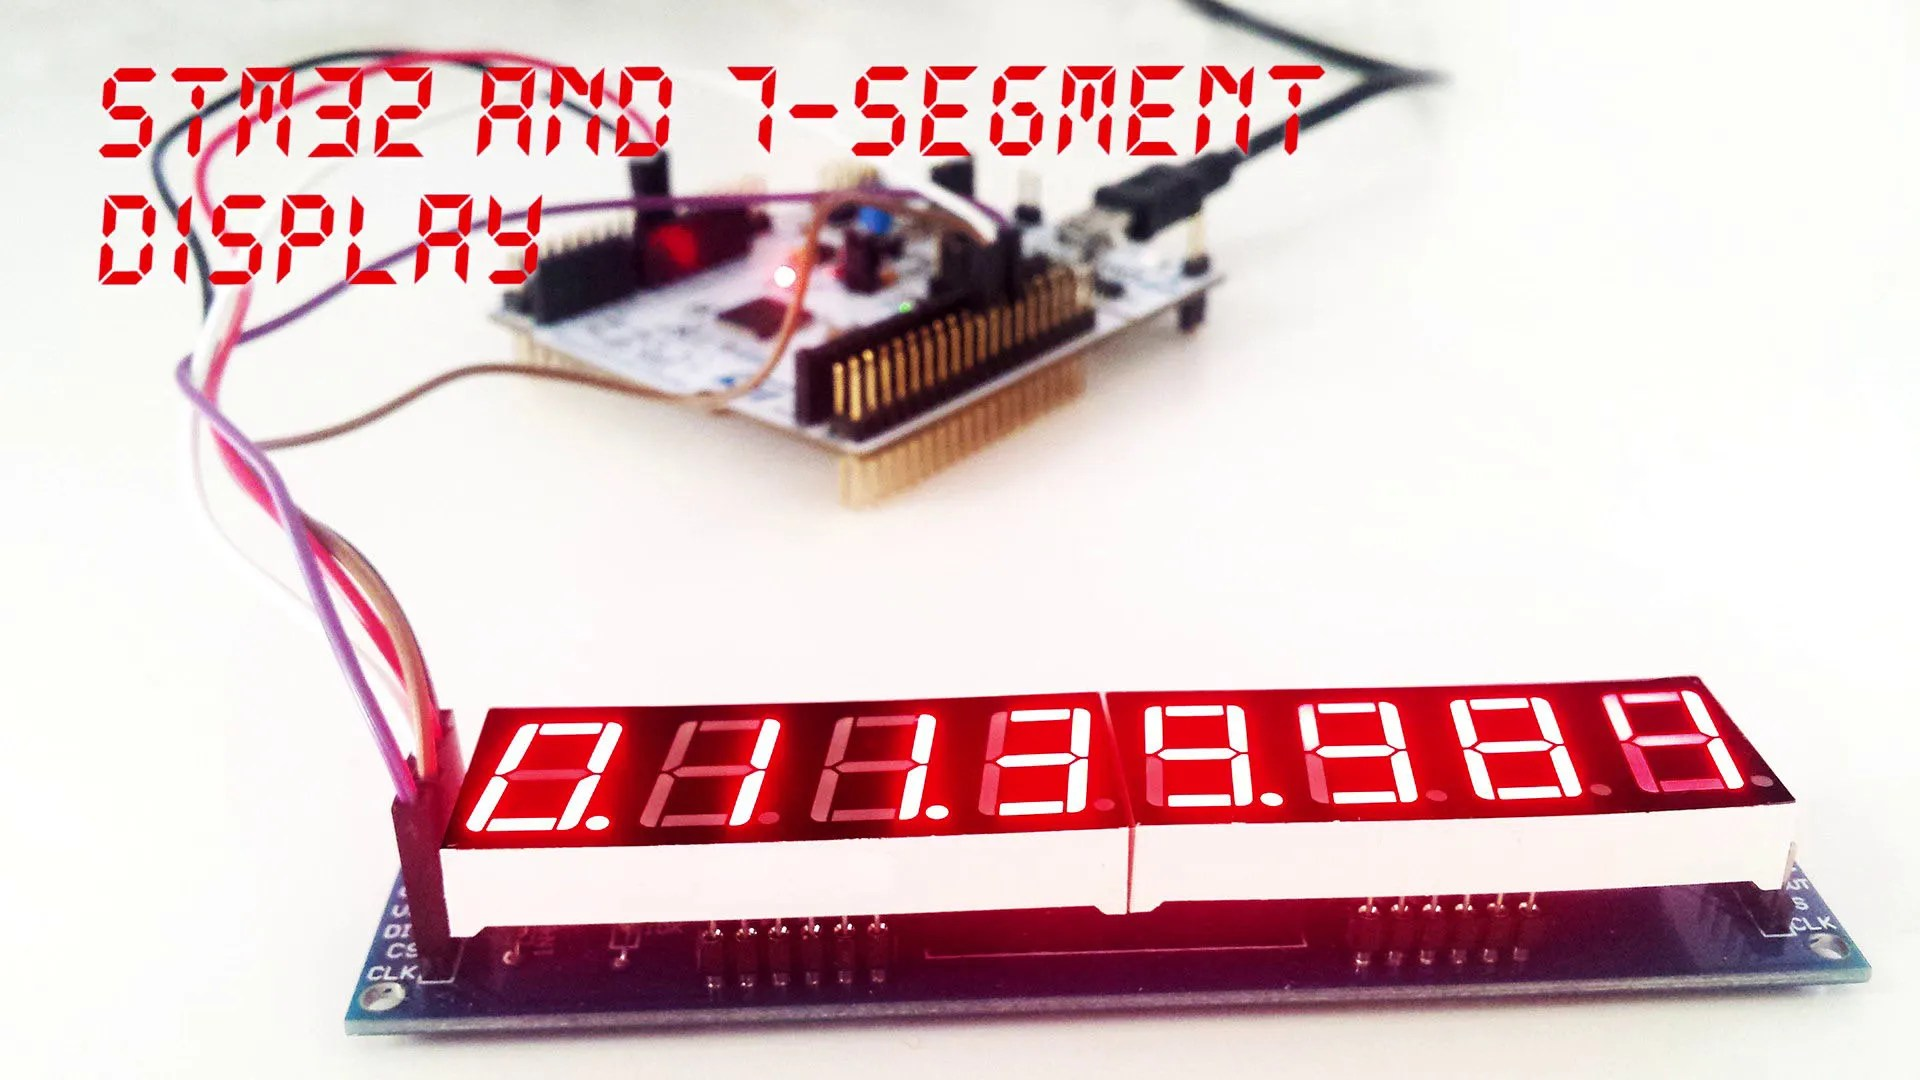 7-segment display and STM32 using ChibiOS